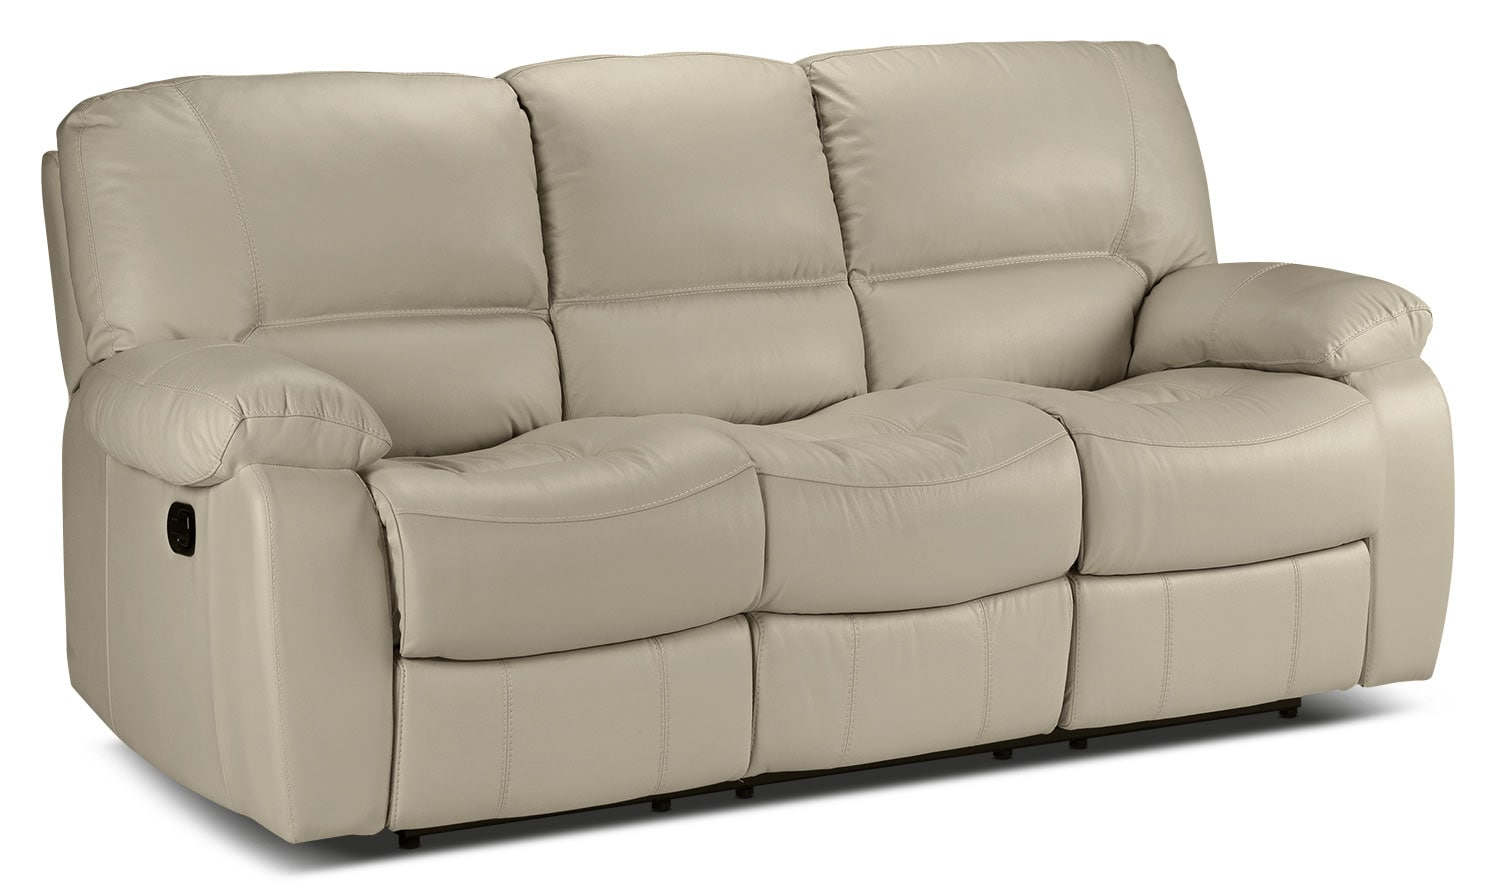 Living Room Furniture - Piermont Reclining Sofa - Silver Grey